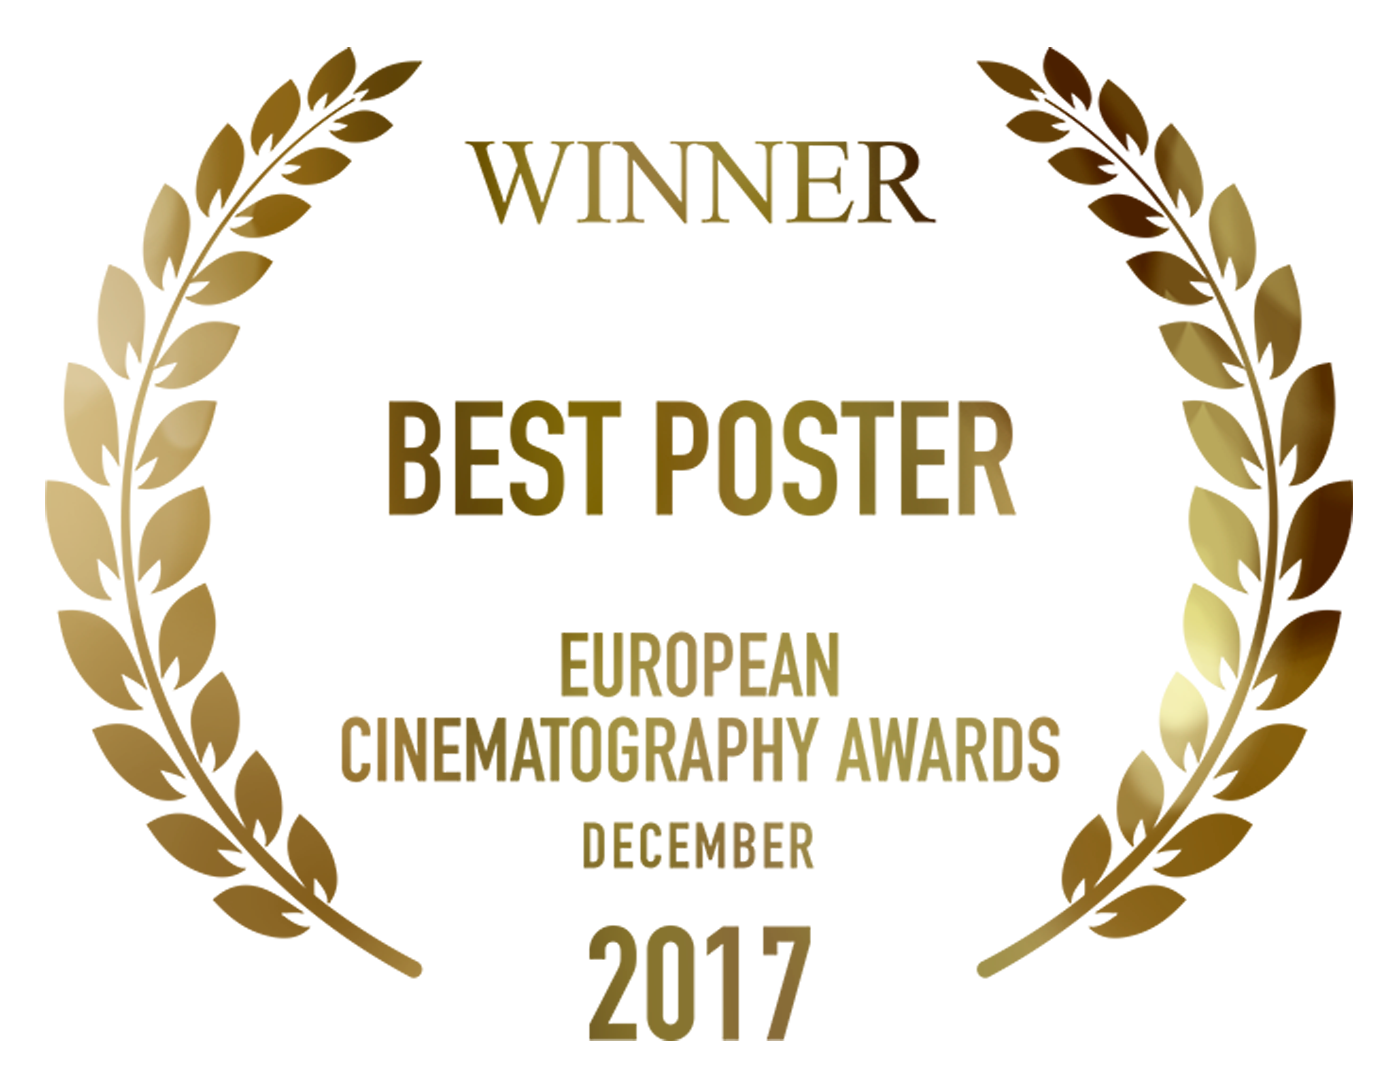 Fragments Winner Best Poster European Cinematography Awards design by Cesare Asaro 2017